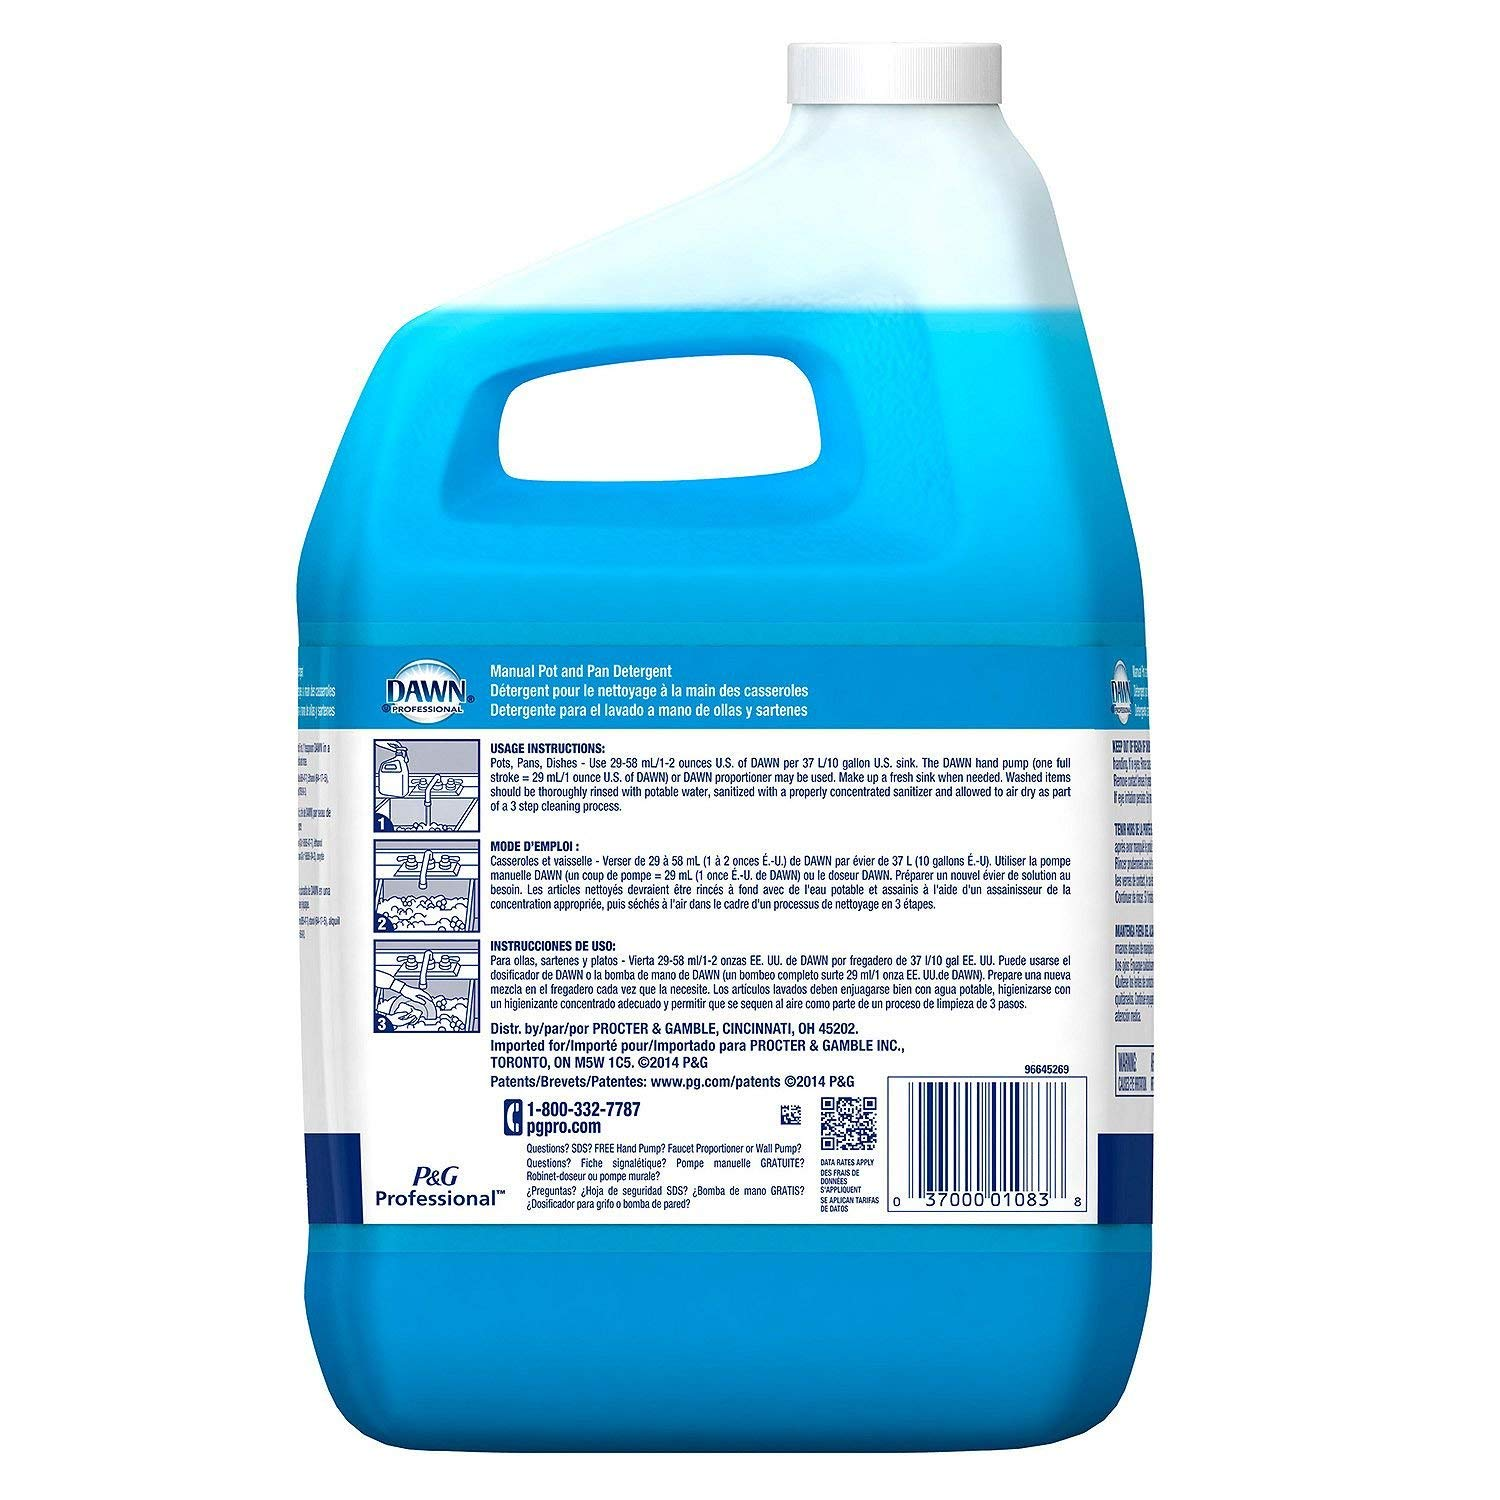 Dawn Professional Pot and Pan Detergent Regular Scent 1 Gallon: Amazon.com: Industrial & Scientific